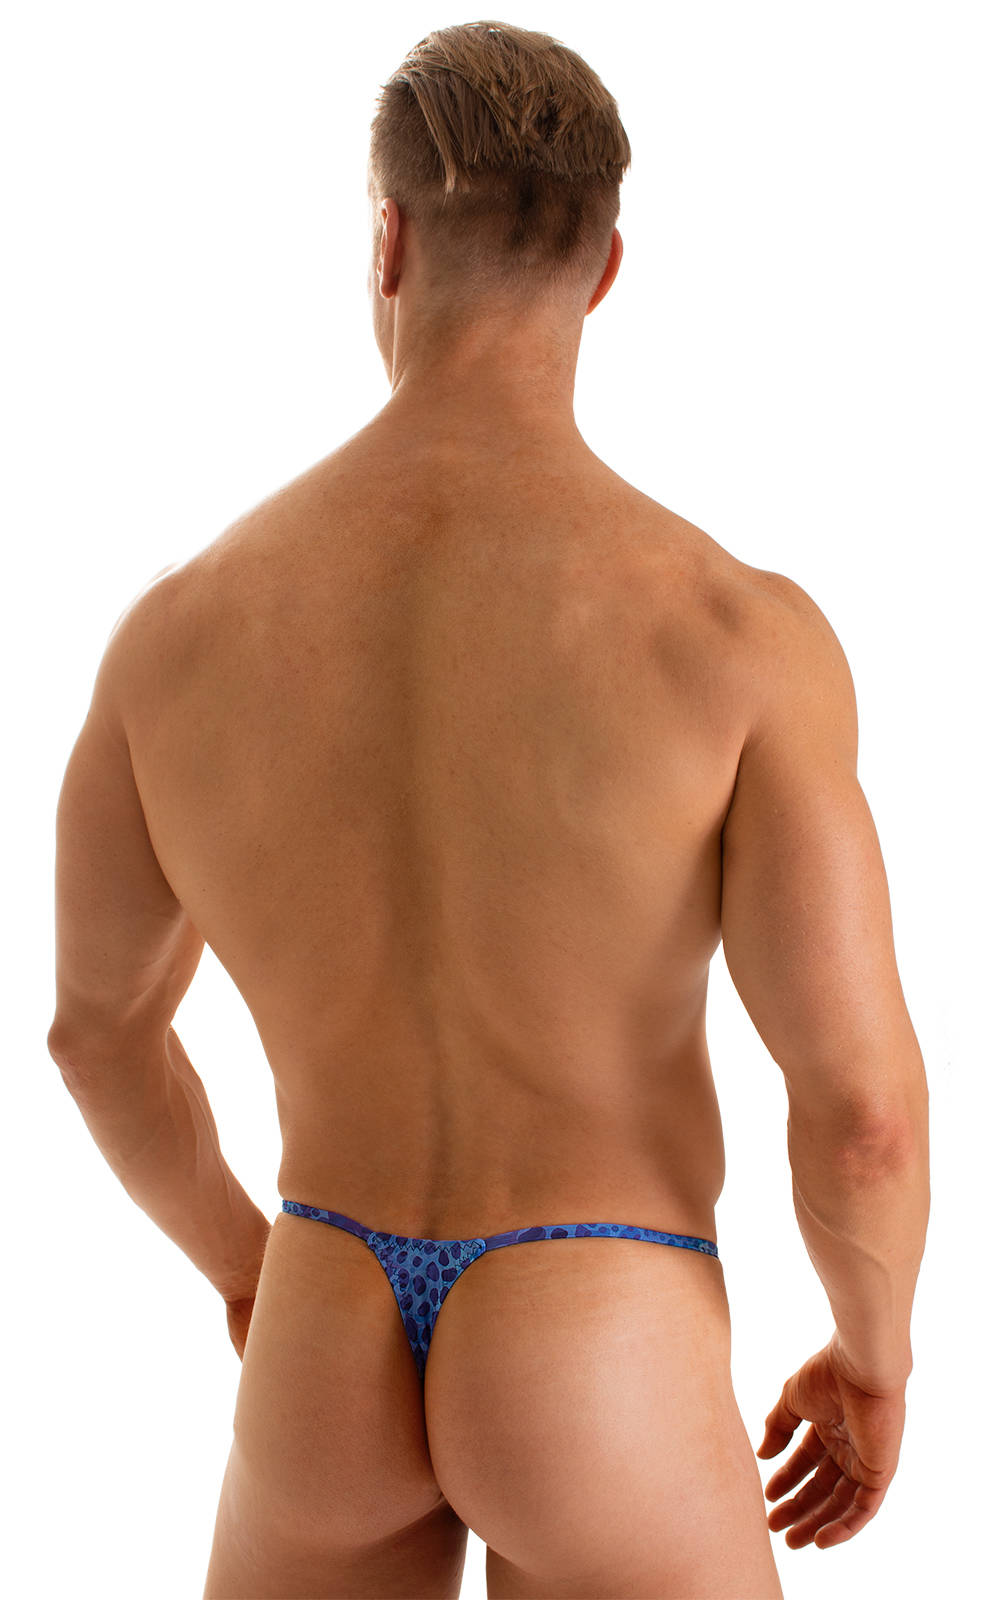 Smooth Pouch Skinny Sides Swim Thong in Super ThinSKINZ Deep Sea 2